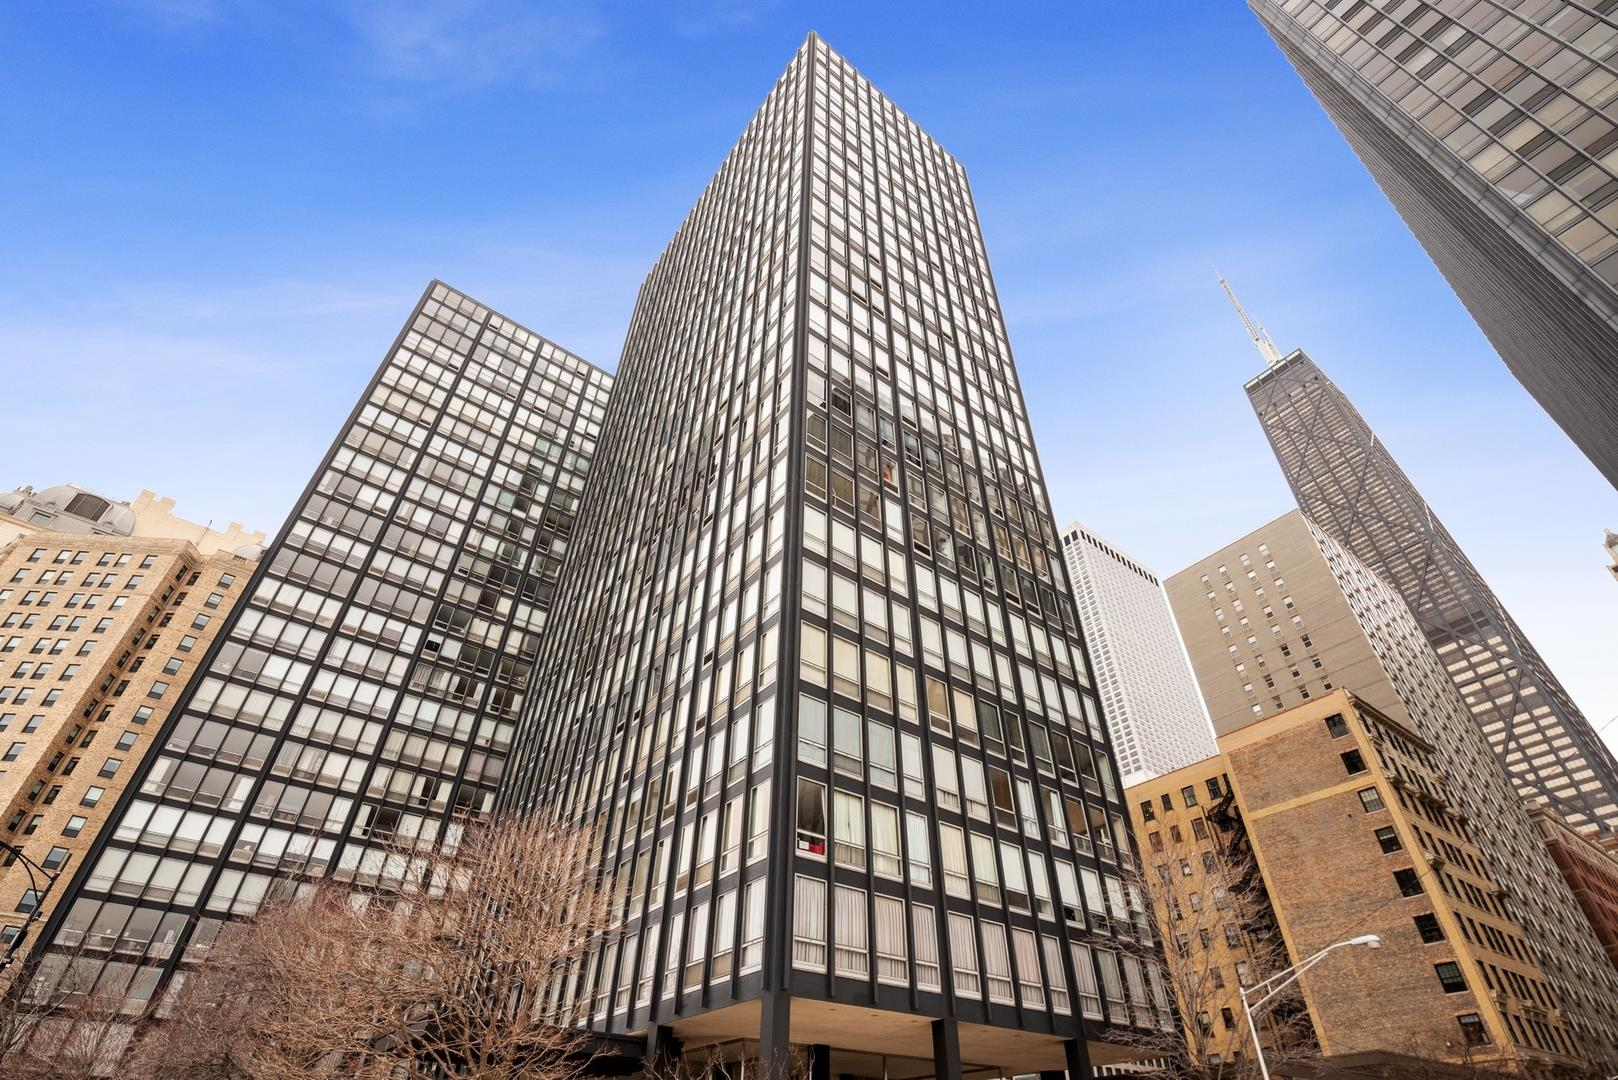 880 N LAKE SHORE Drive #14CD, Chicago, IL 60611 - #: 10902555